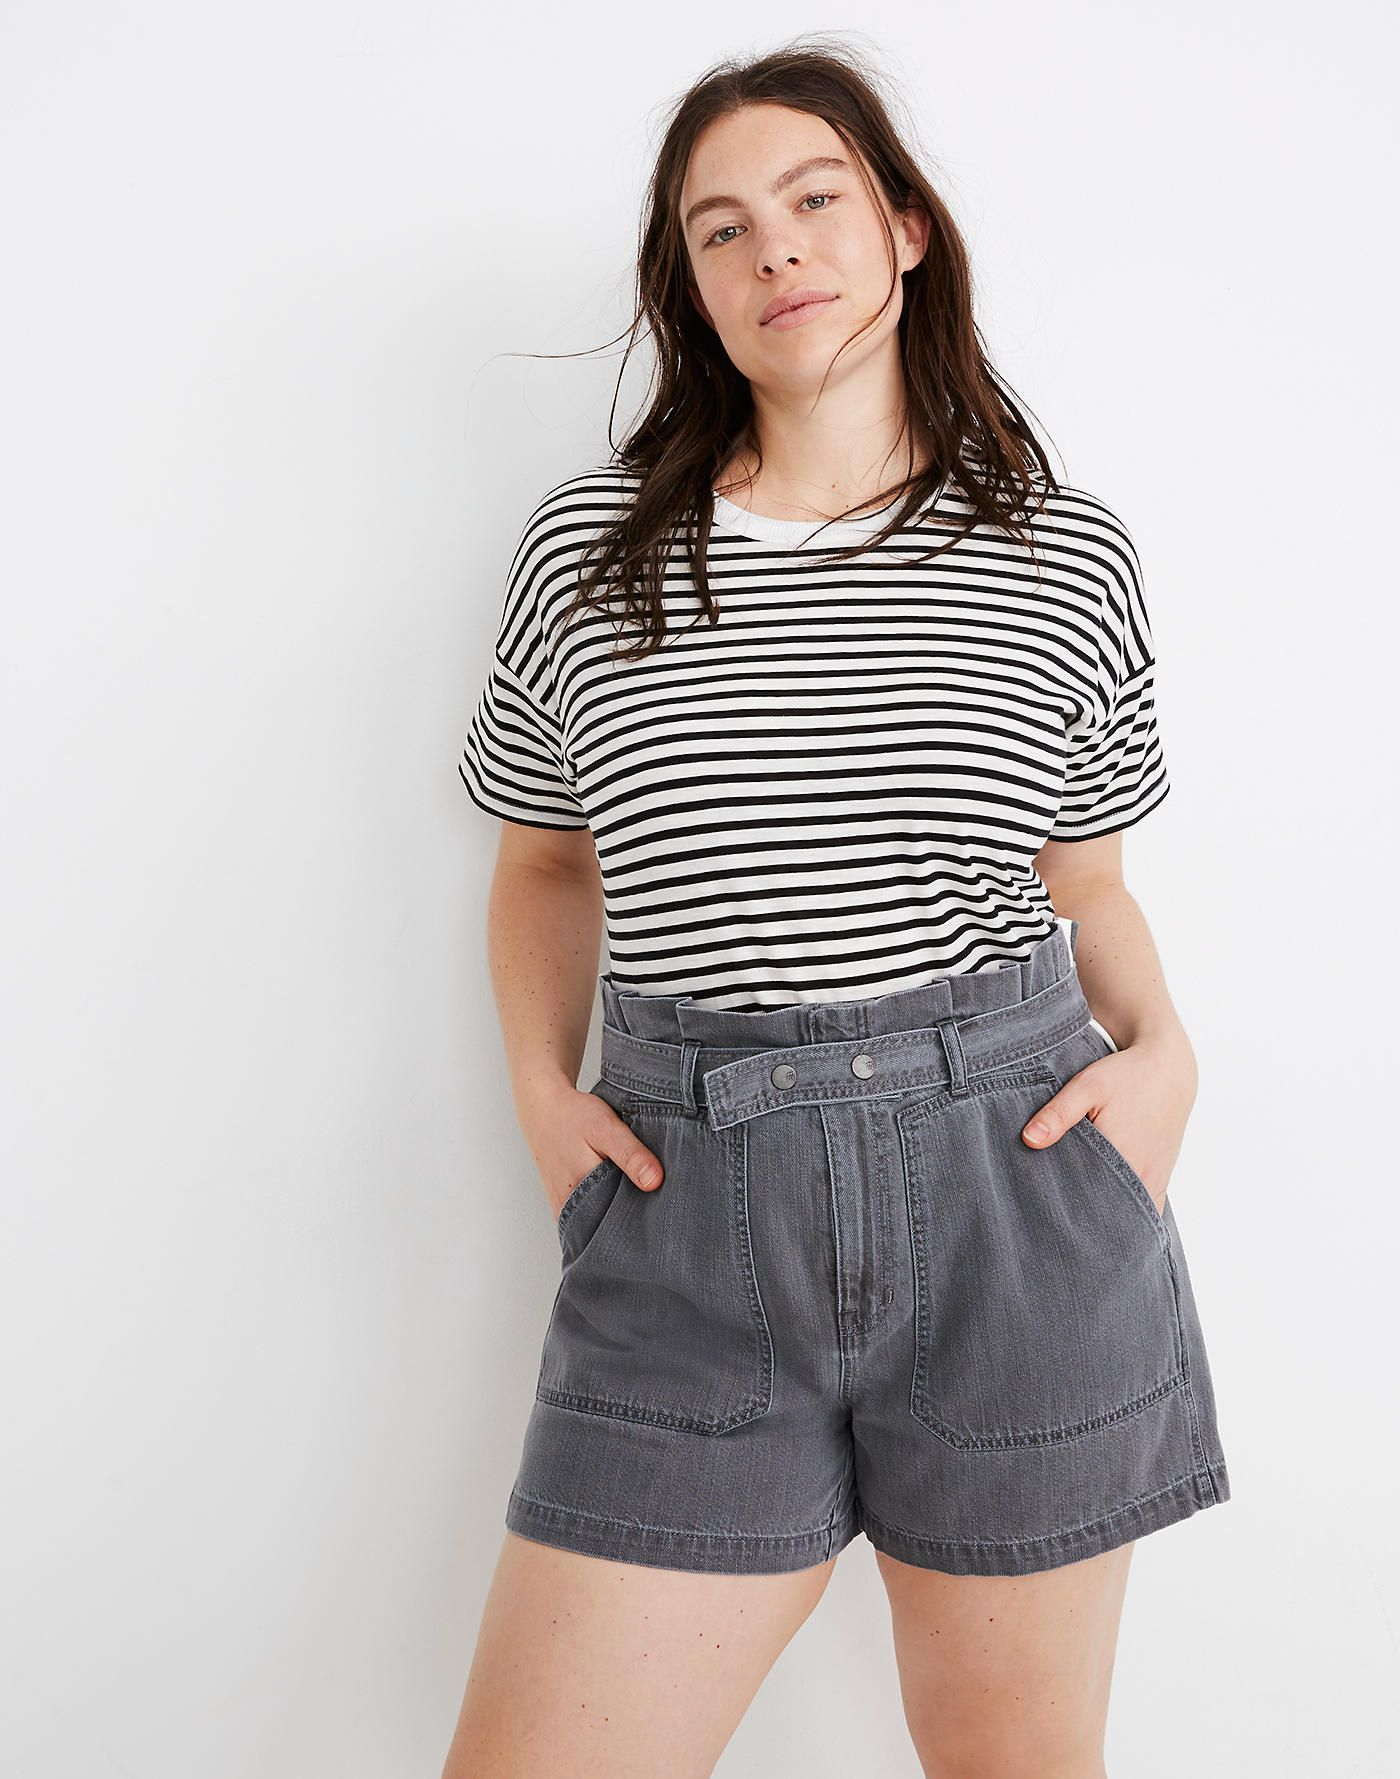 Everything at Madewell Is Randomly 25% Off—Here's What's in My Cart 3